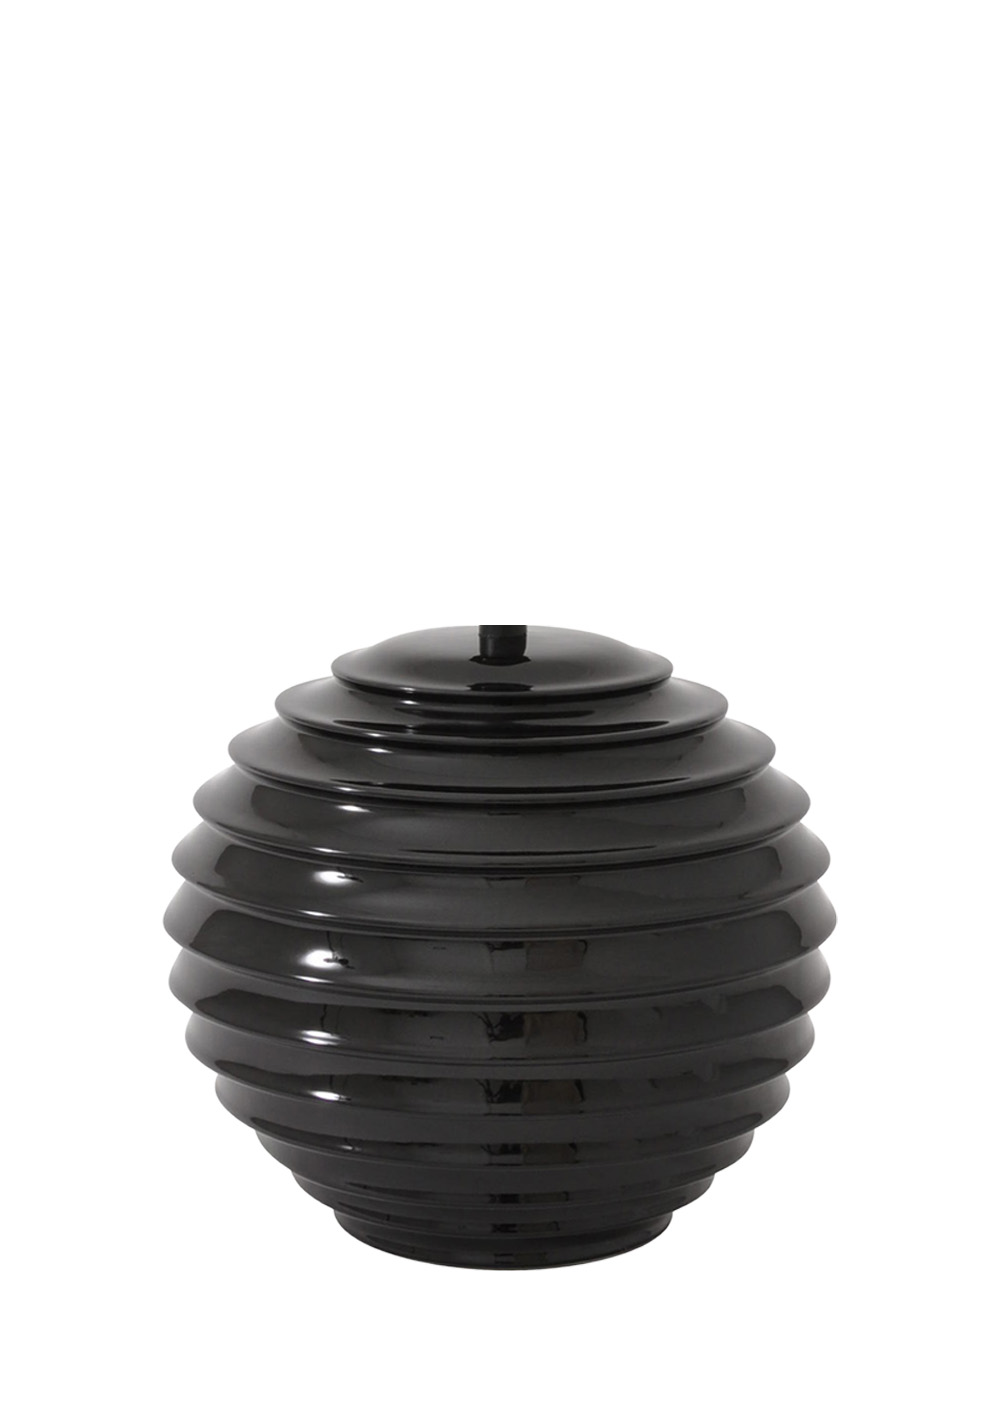 Lamp base Enea nera